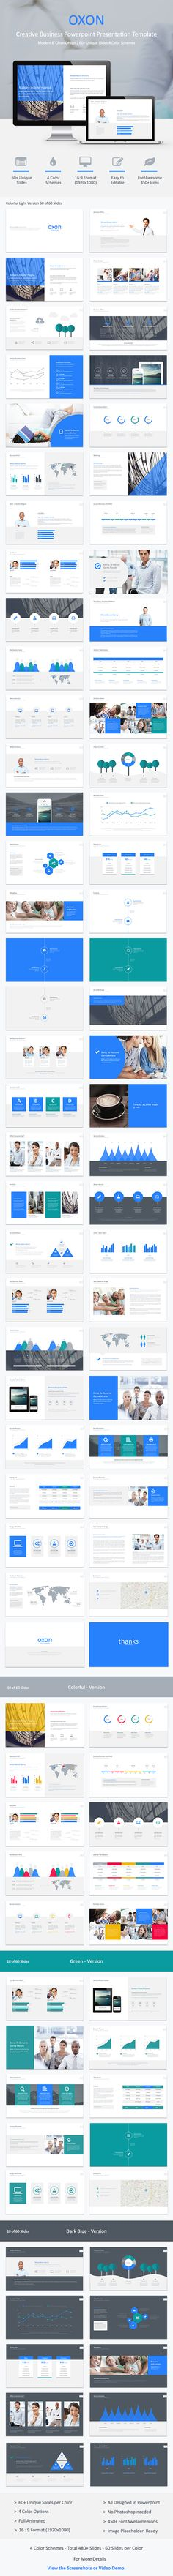 Oxon - Powerpoint Business Template - Business PowerPoint Templates